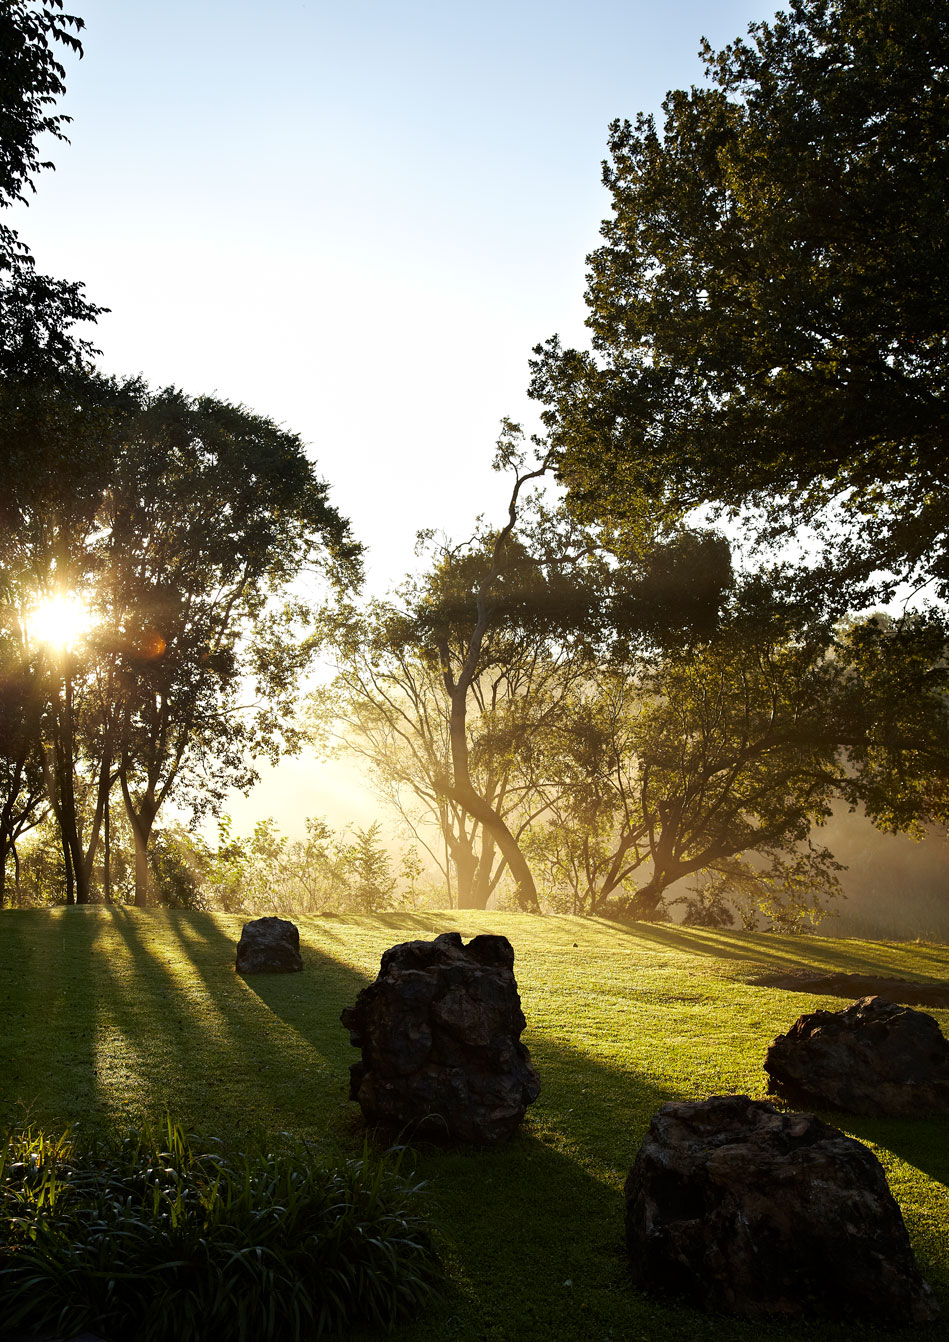 The beautiful setting of the stream‭, ‬rocks and lawn surrounding the pavilion evokes the layers of nature and artifice in the surrounding landscape‭, ‬and encourages contemplation within the profound setting of The Cradle of Humankind‭.‬